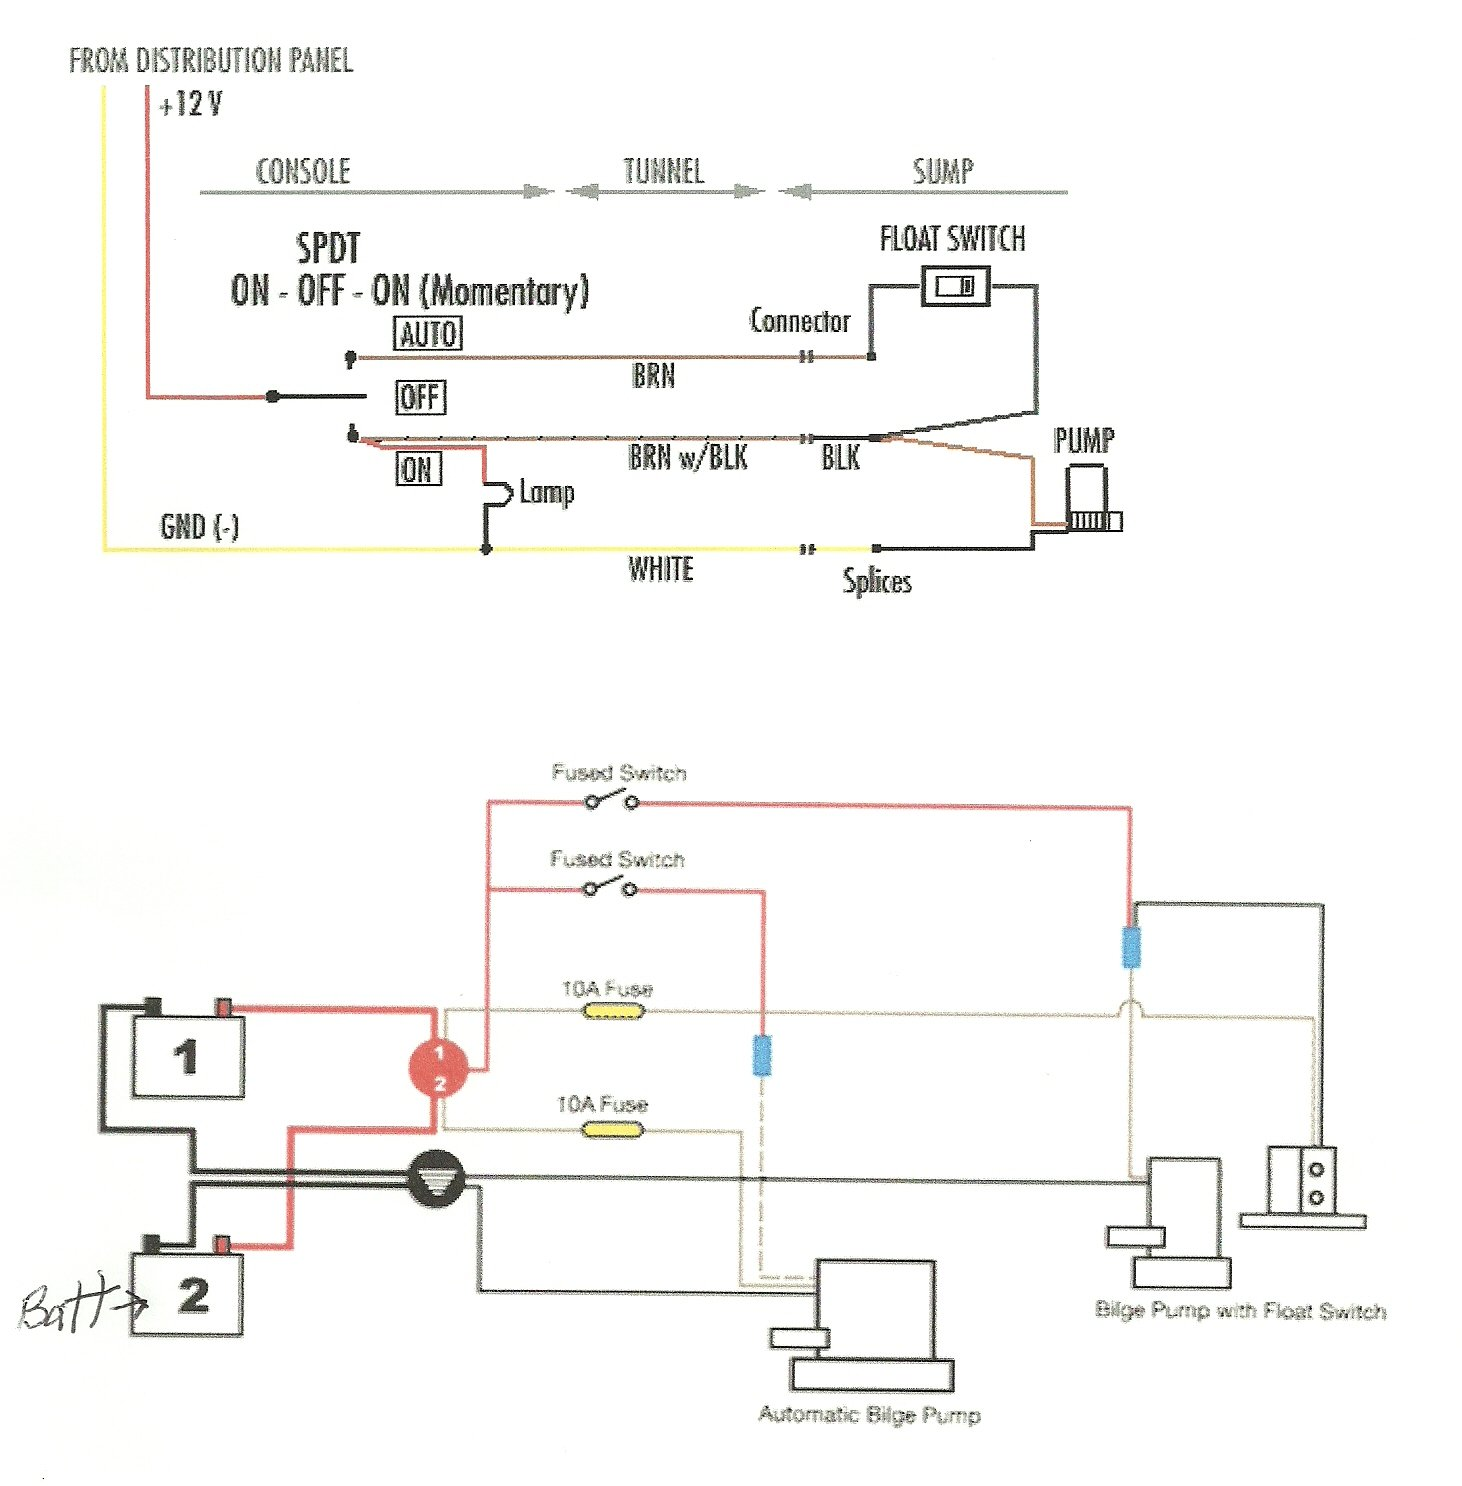 3 way float switch wiring diagram diagram base website wiring ...  tassanare